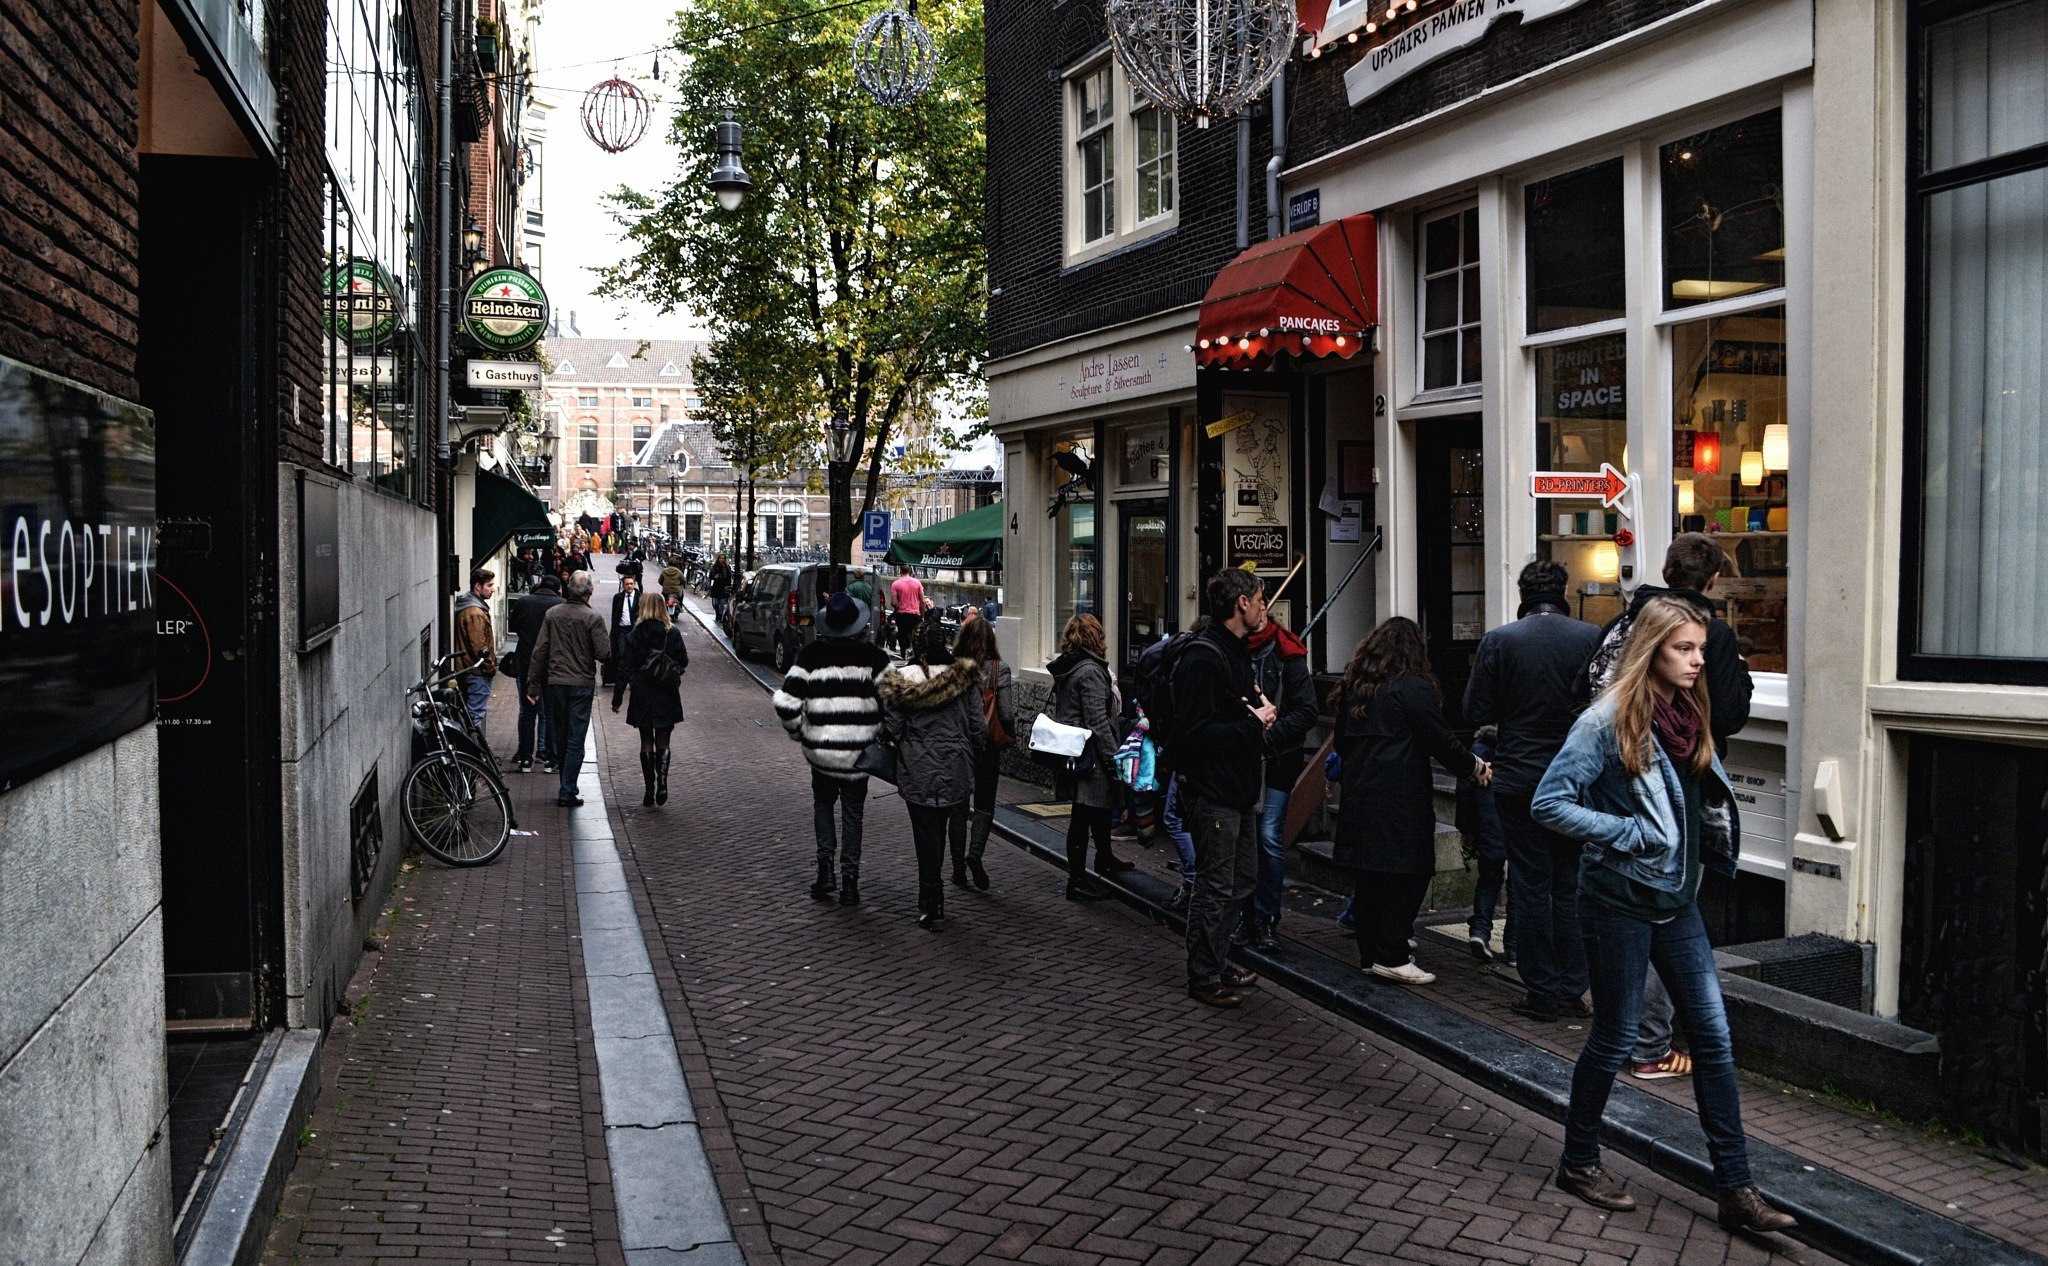 A street in Amsterdam by Fred Matos